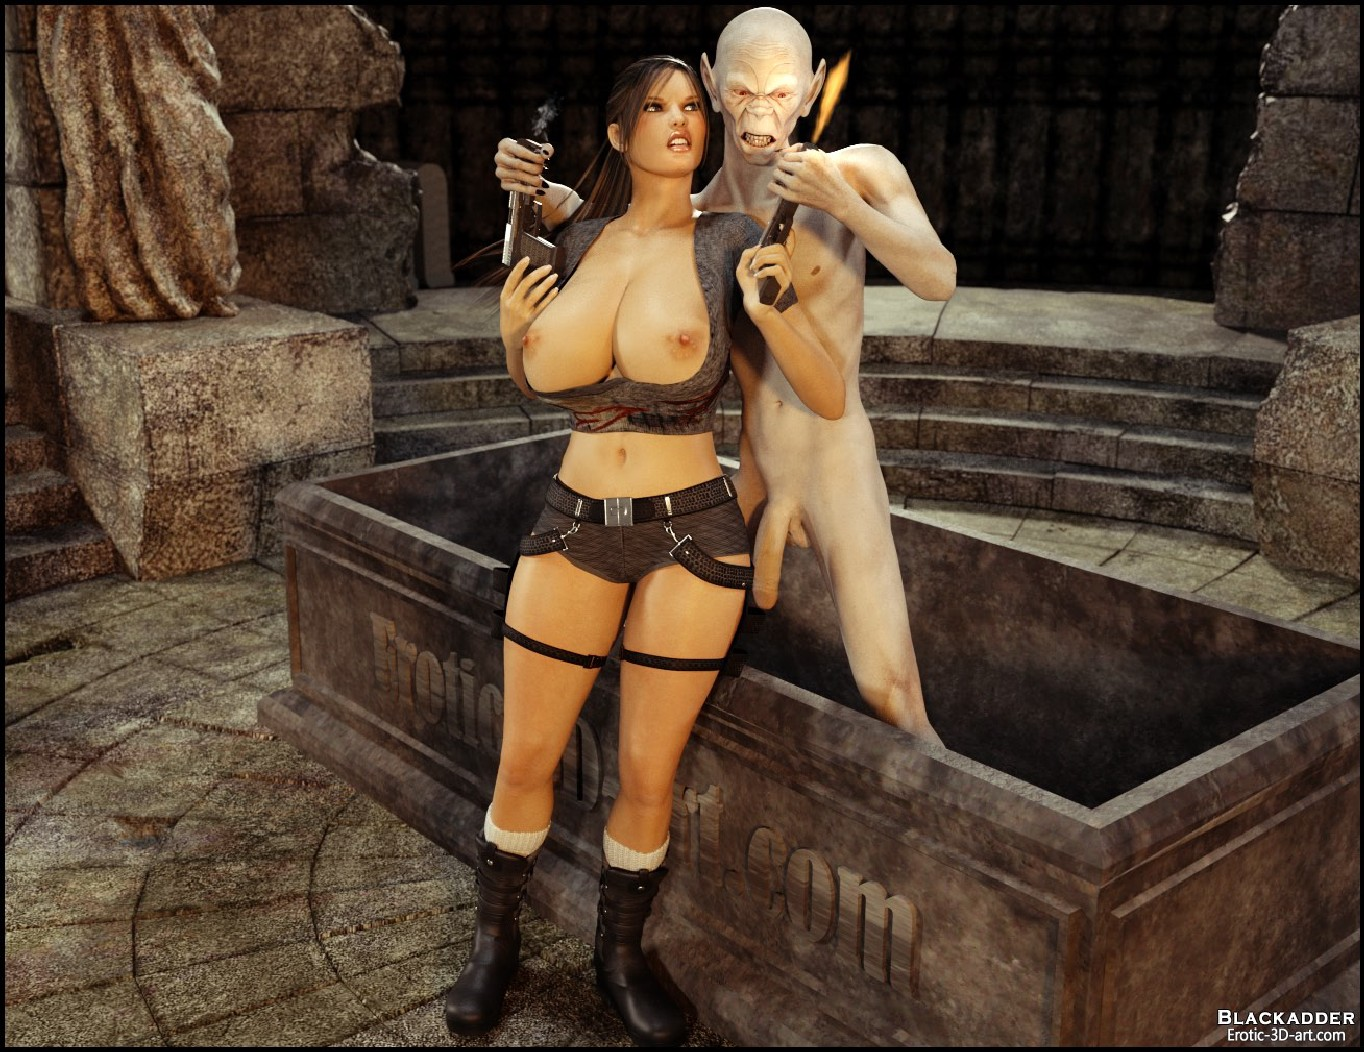 Tomb raider 3d sextubes erotic galleries